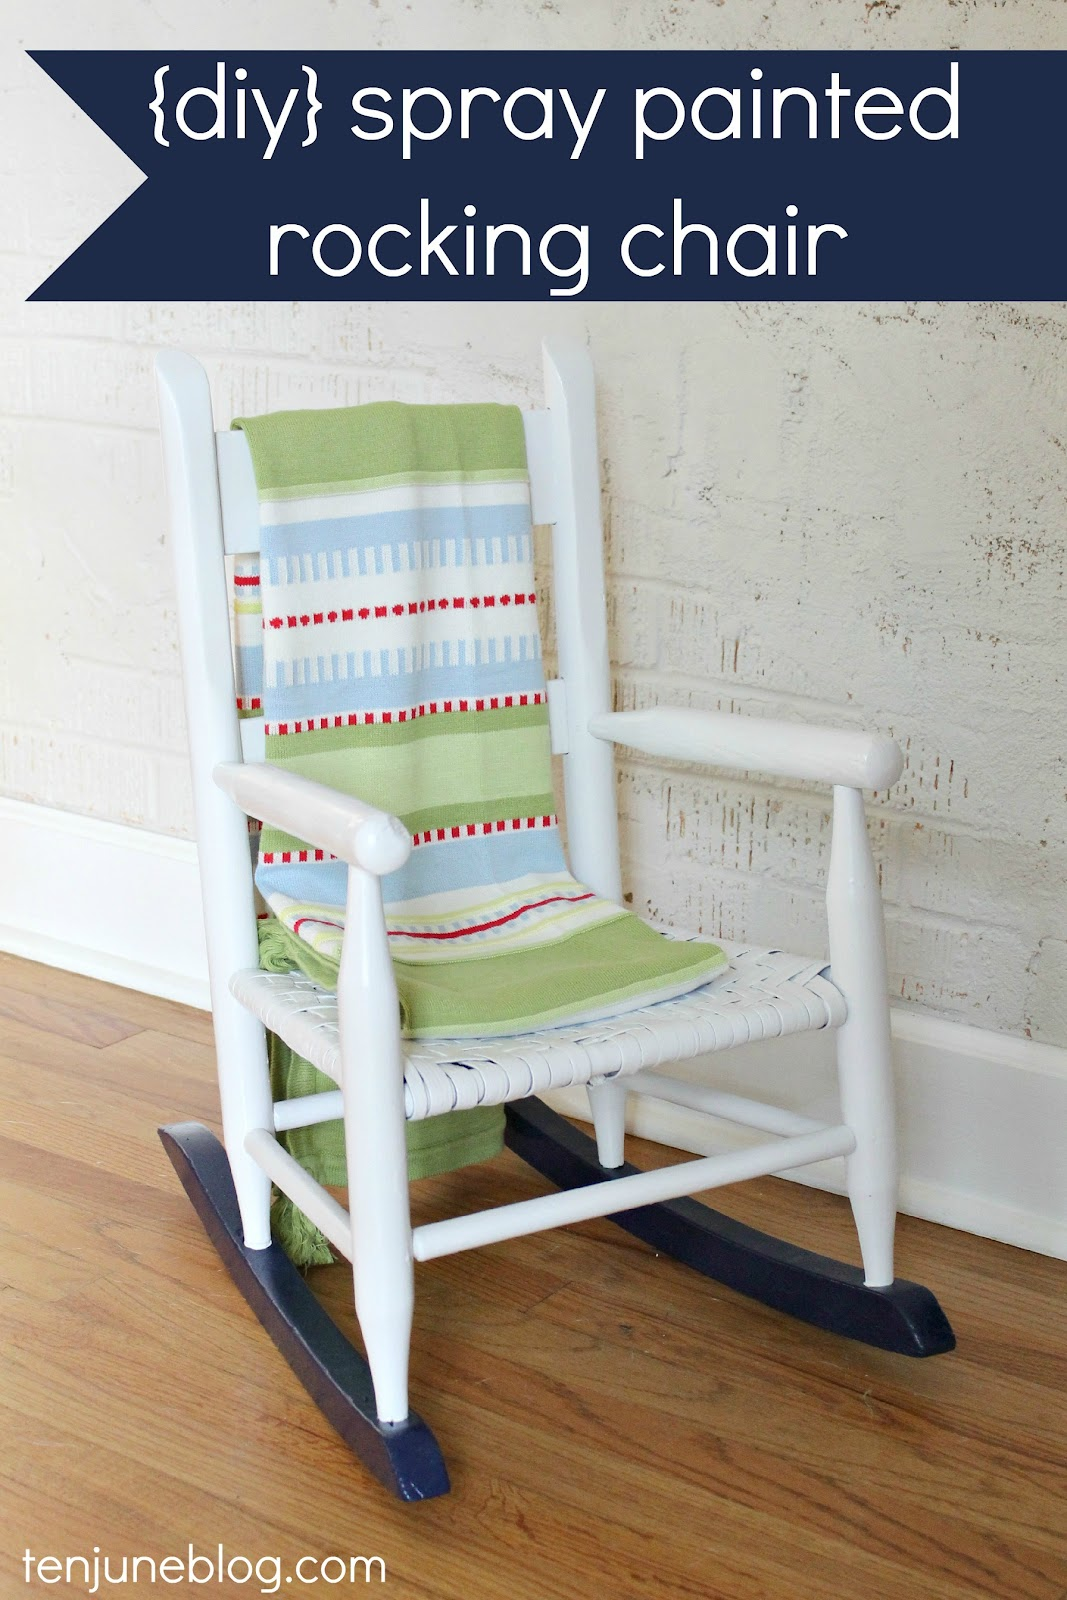 Ten June: Multi-Colored Spray Painted Rocking Chair {A Nursery DIY